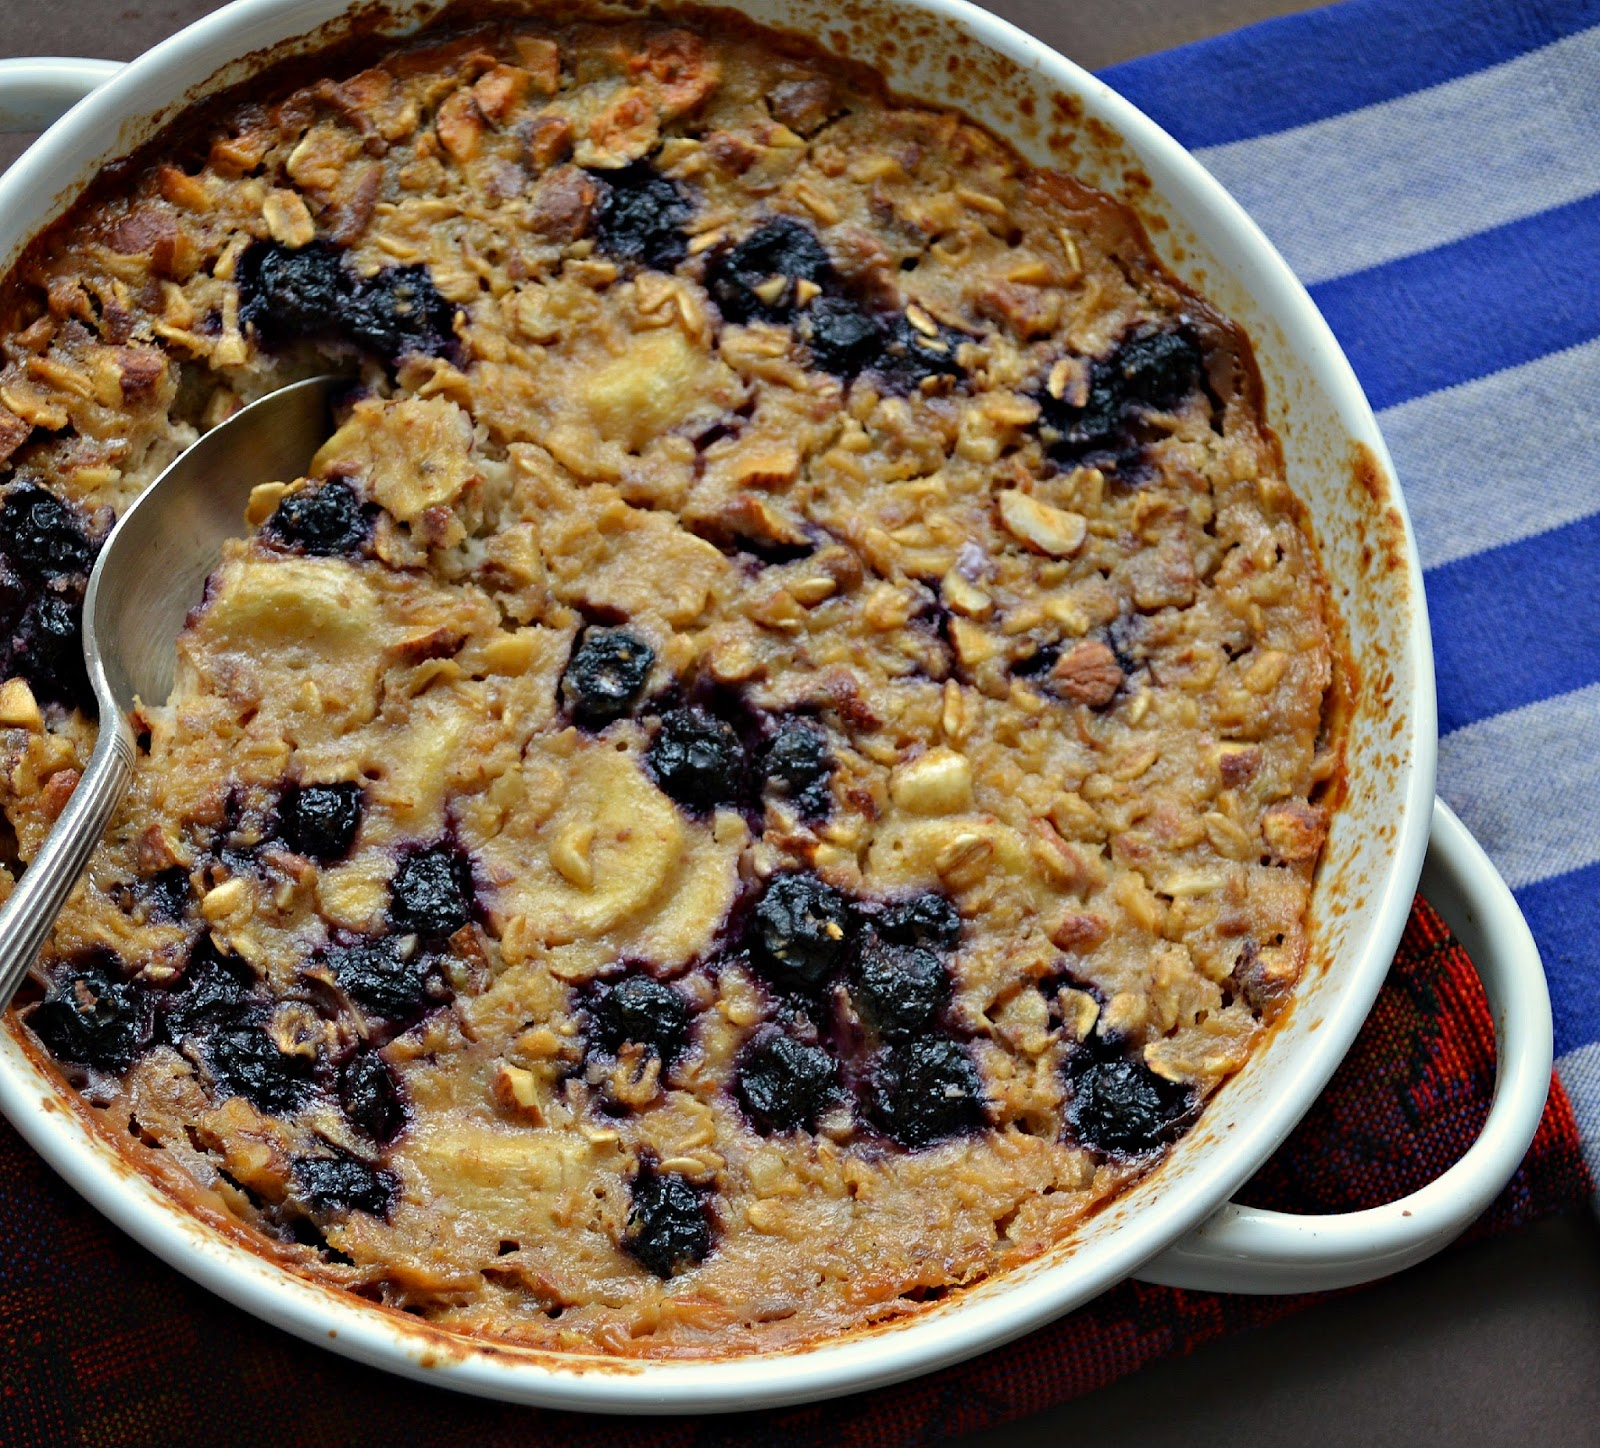 This oatmeal made with applesauce, nuts and fruit is really a great way to start the day! Easy to do and can be made ahead and reheated! #oatmeal #breakfast www.thisishowicook.com